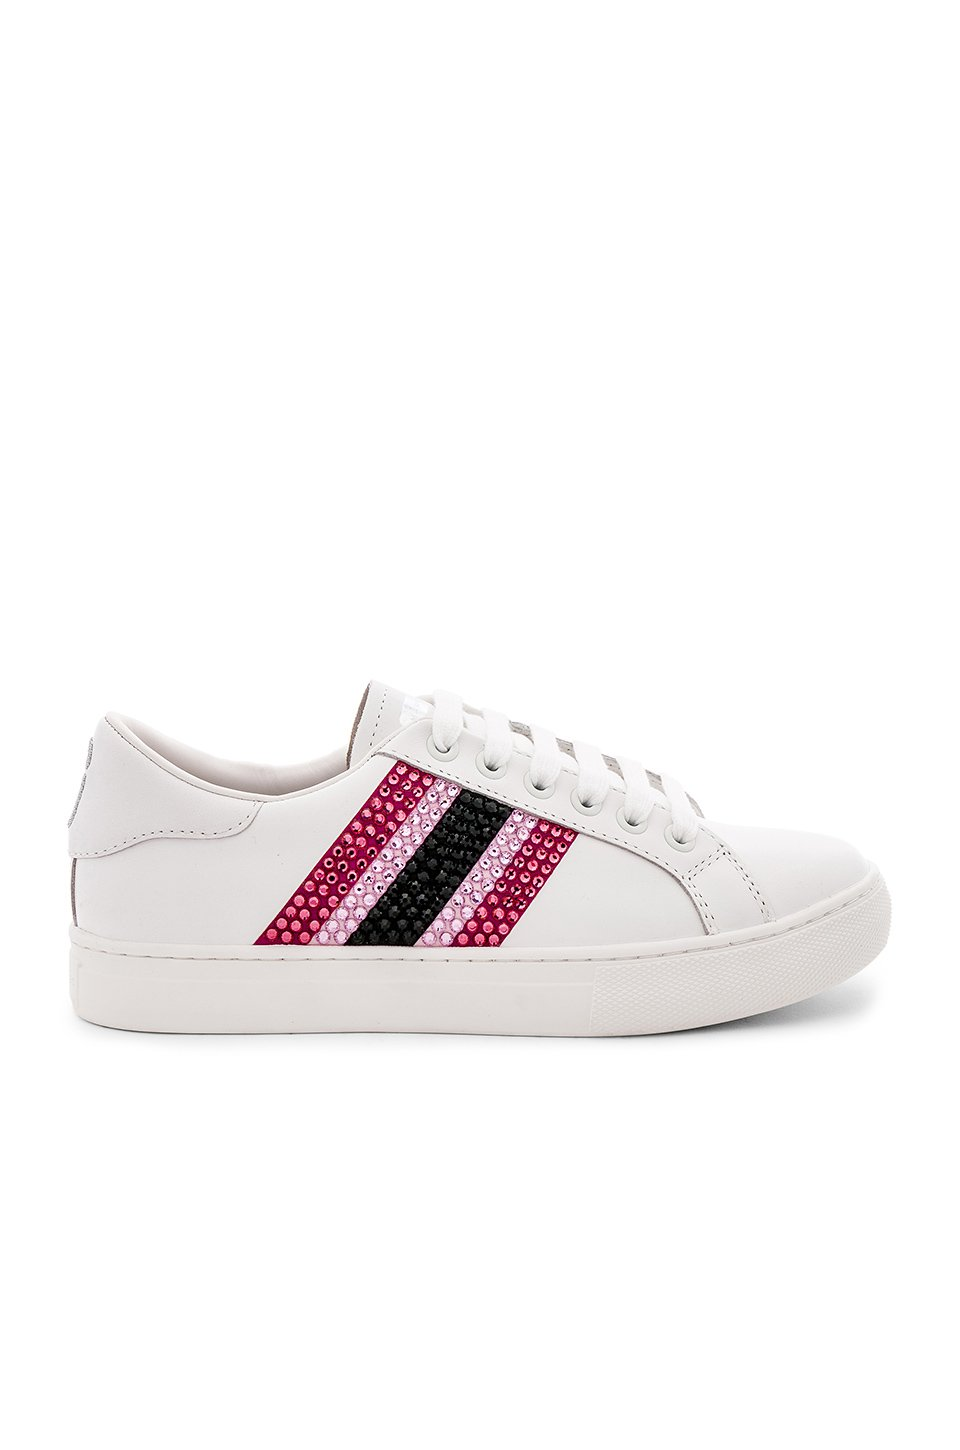 Empire Strass Low Top Sneaker